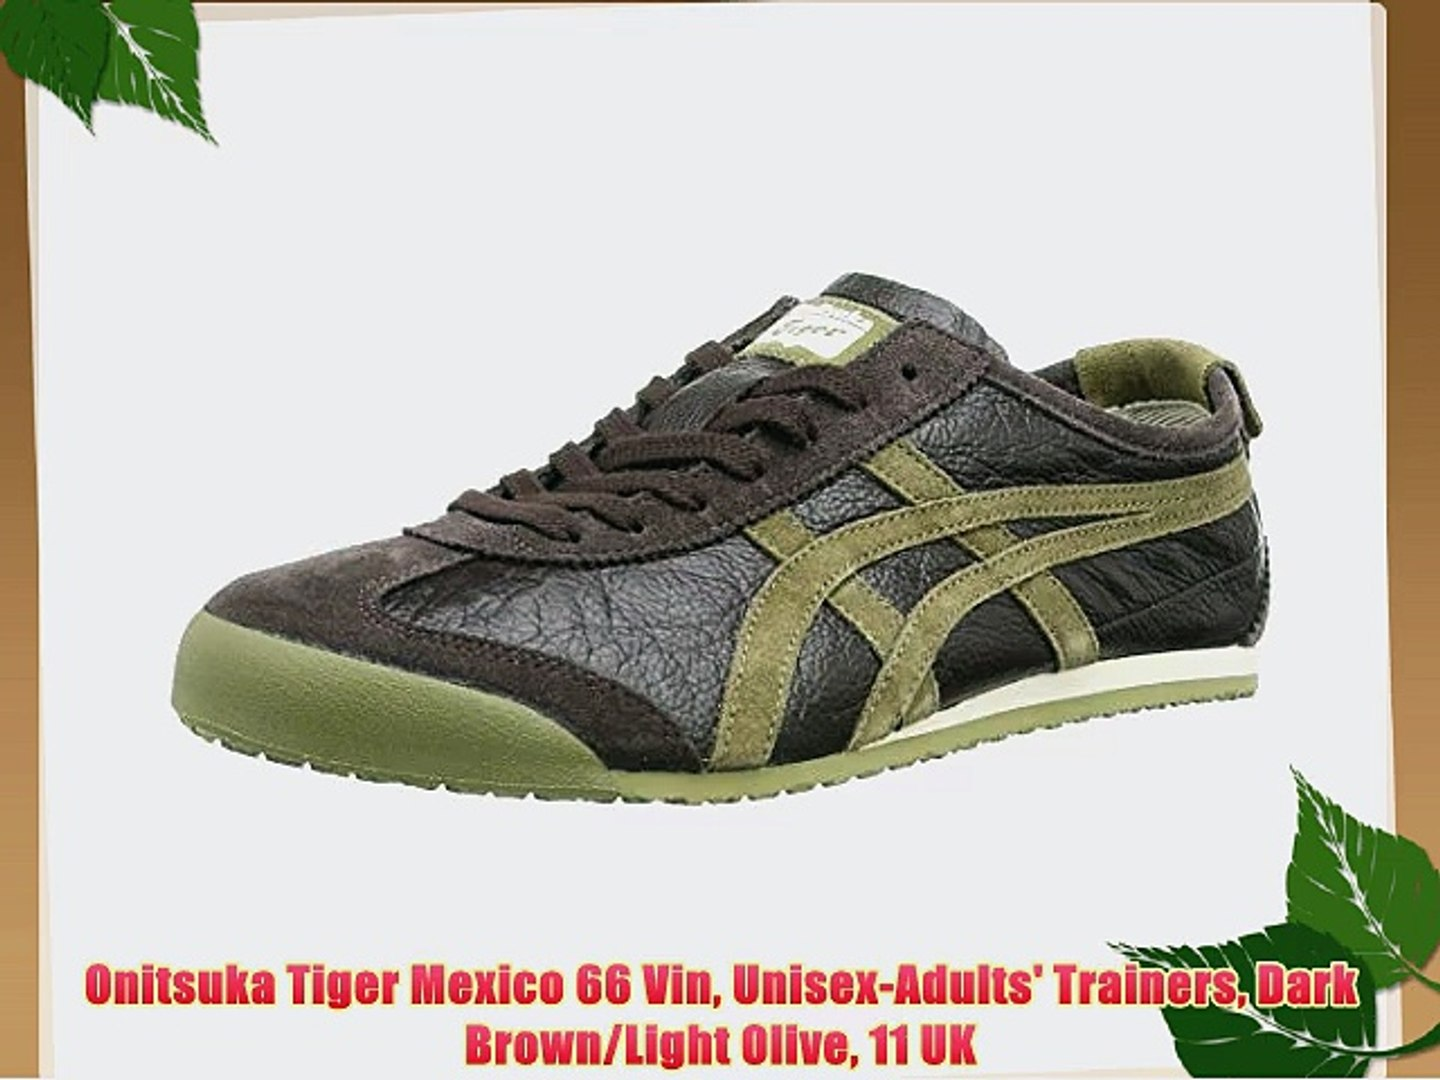 buy online f42b0 cf25f Onitsuka Tiger Mexico 66 Vin Unisex-Adults' Trainers Dark Brown/Light Olive  11 UK